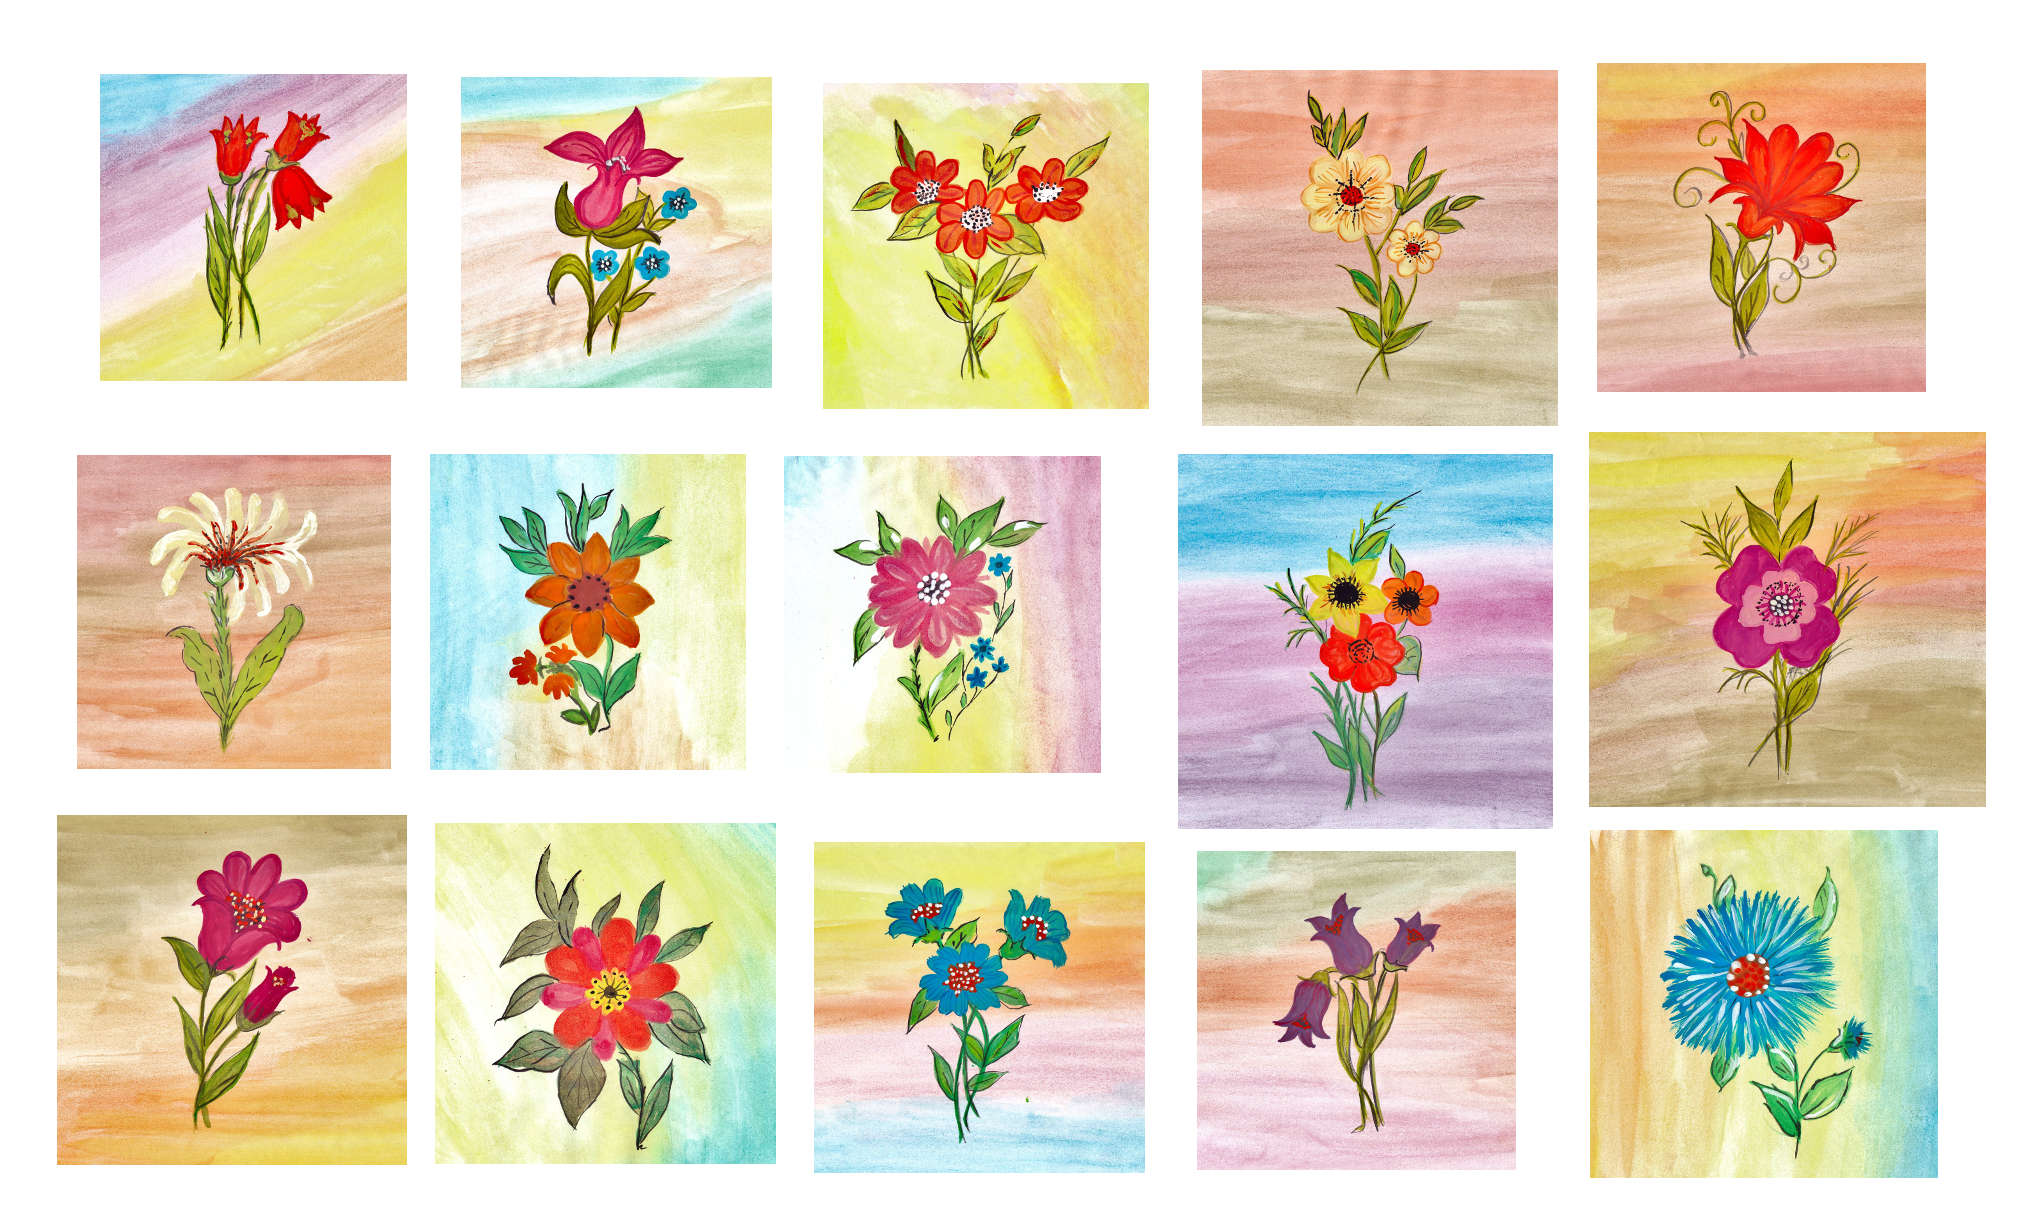 15-flower-bouquet-watercolor-painting-background-cover.jpg